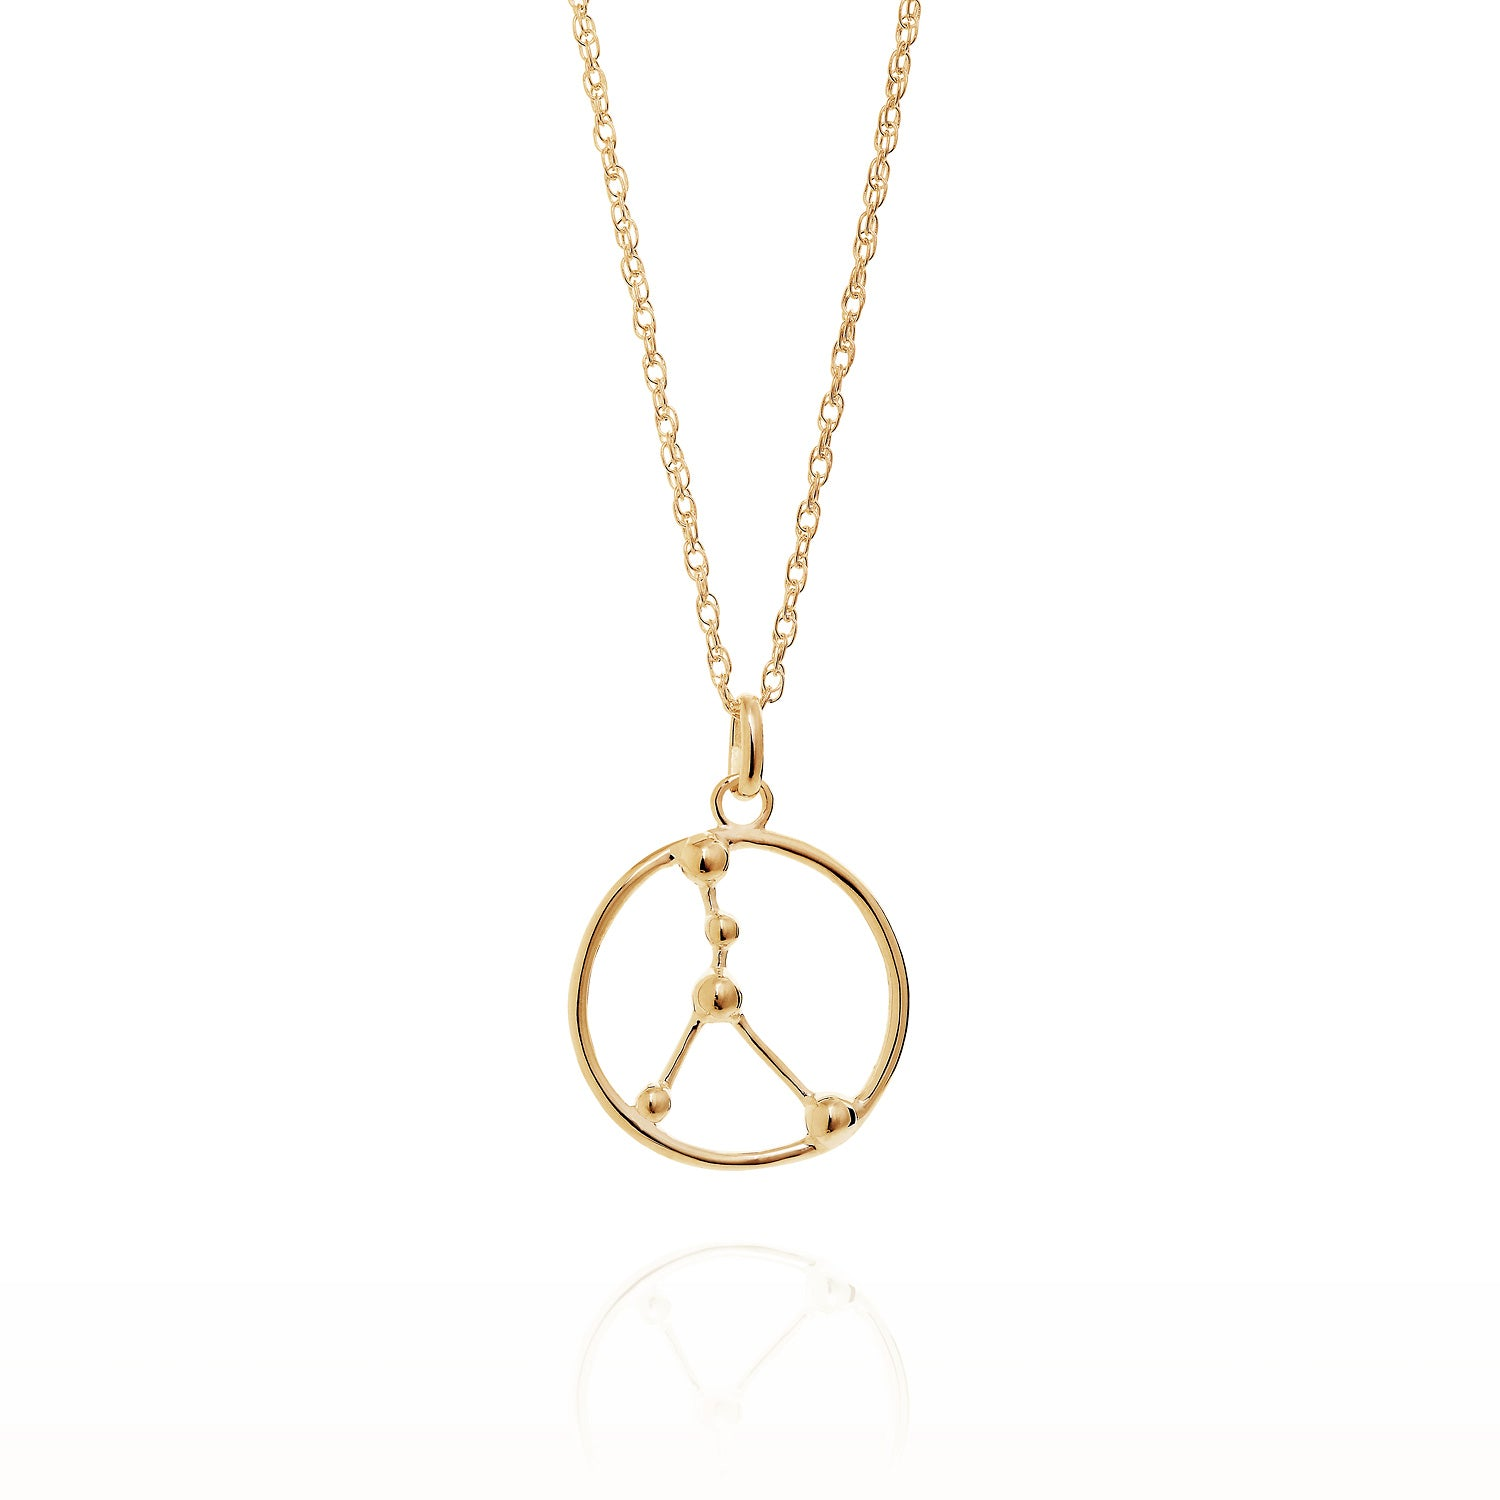 Gold Cancer astrology star sign Necklace